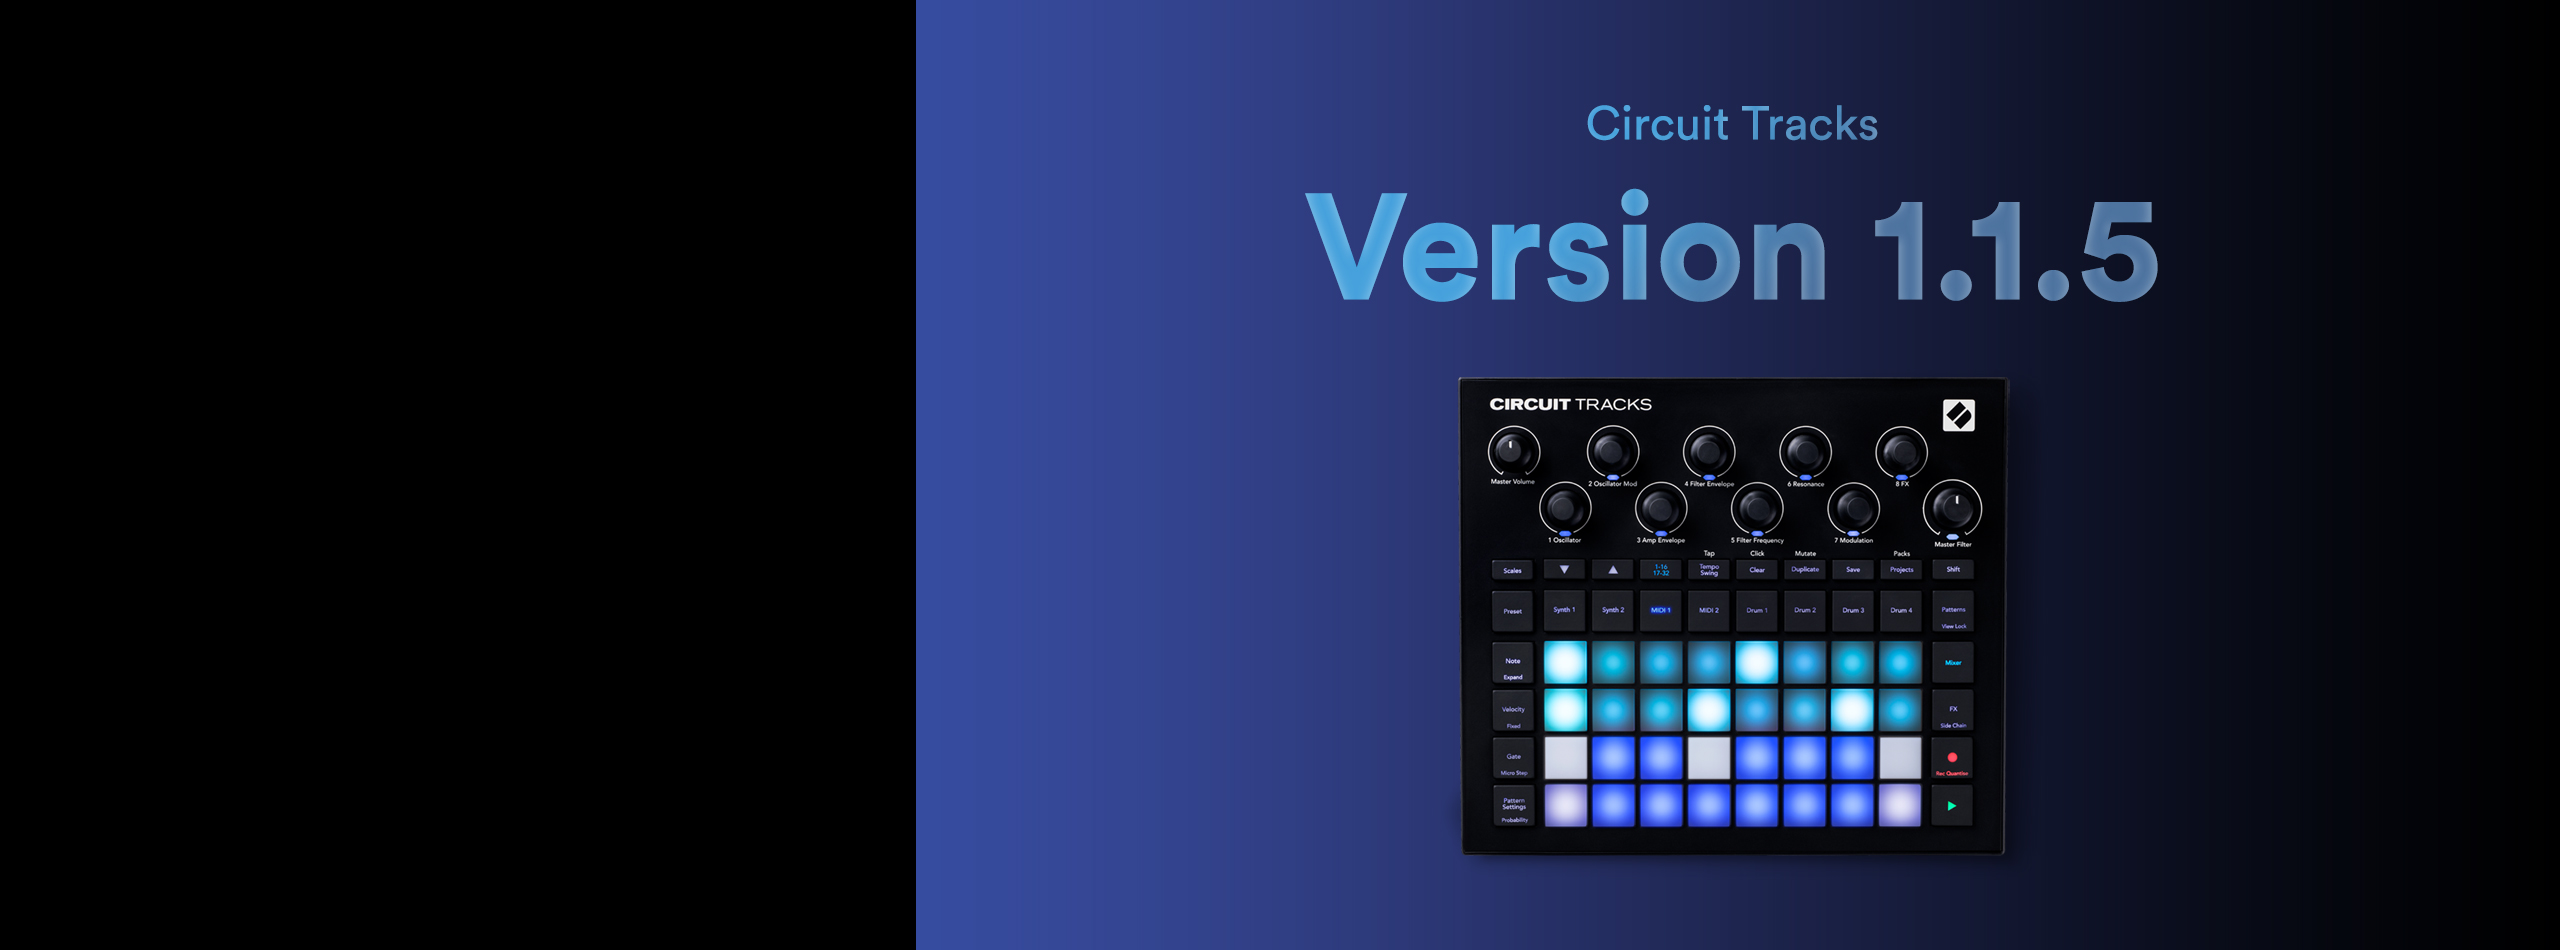 Circuit Tracks Sample Time-v1.1.5